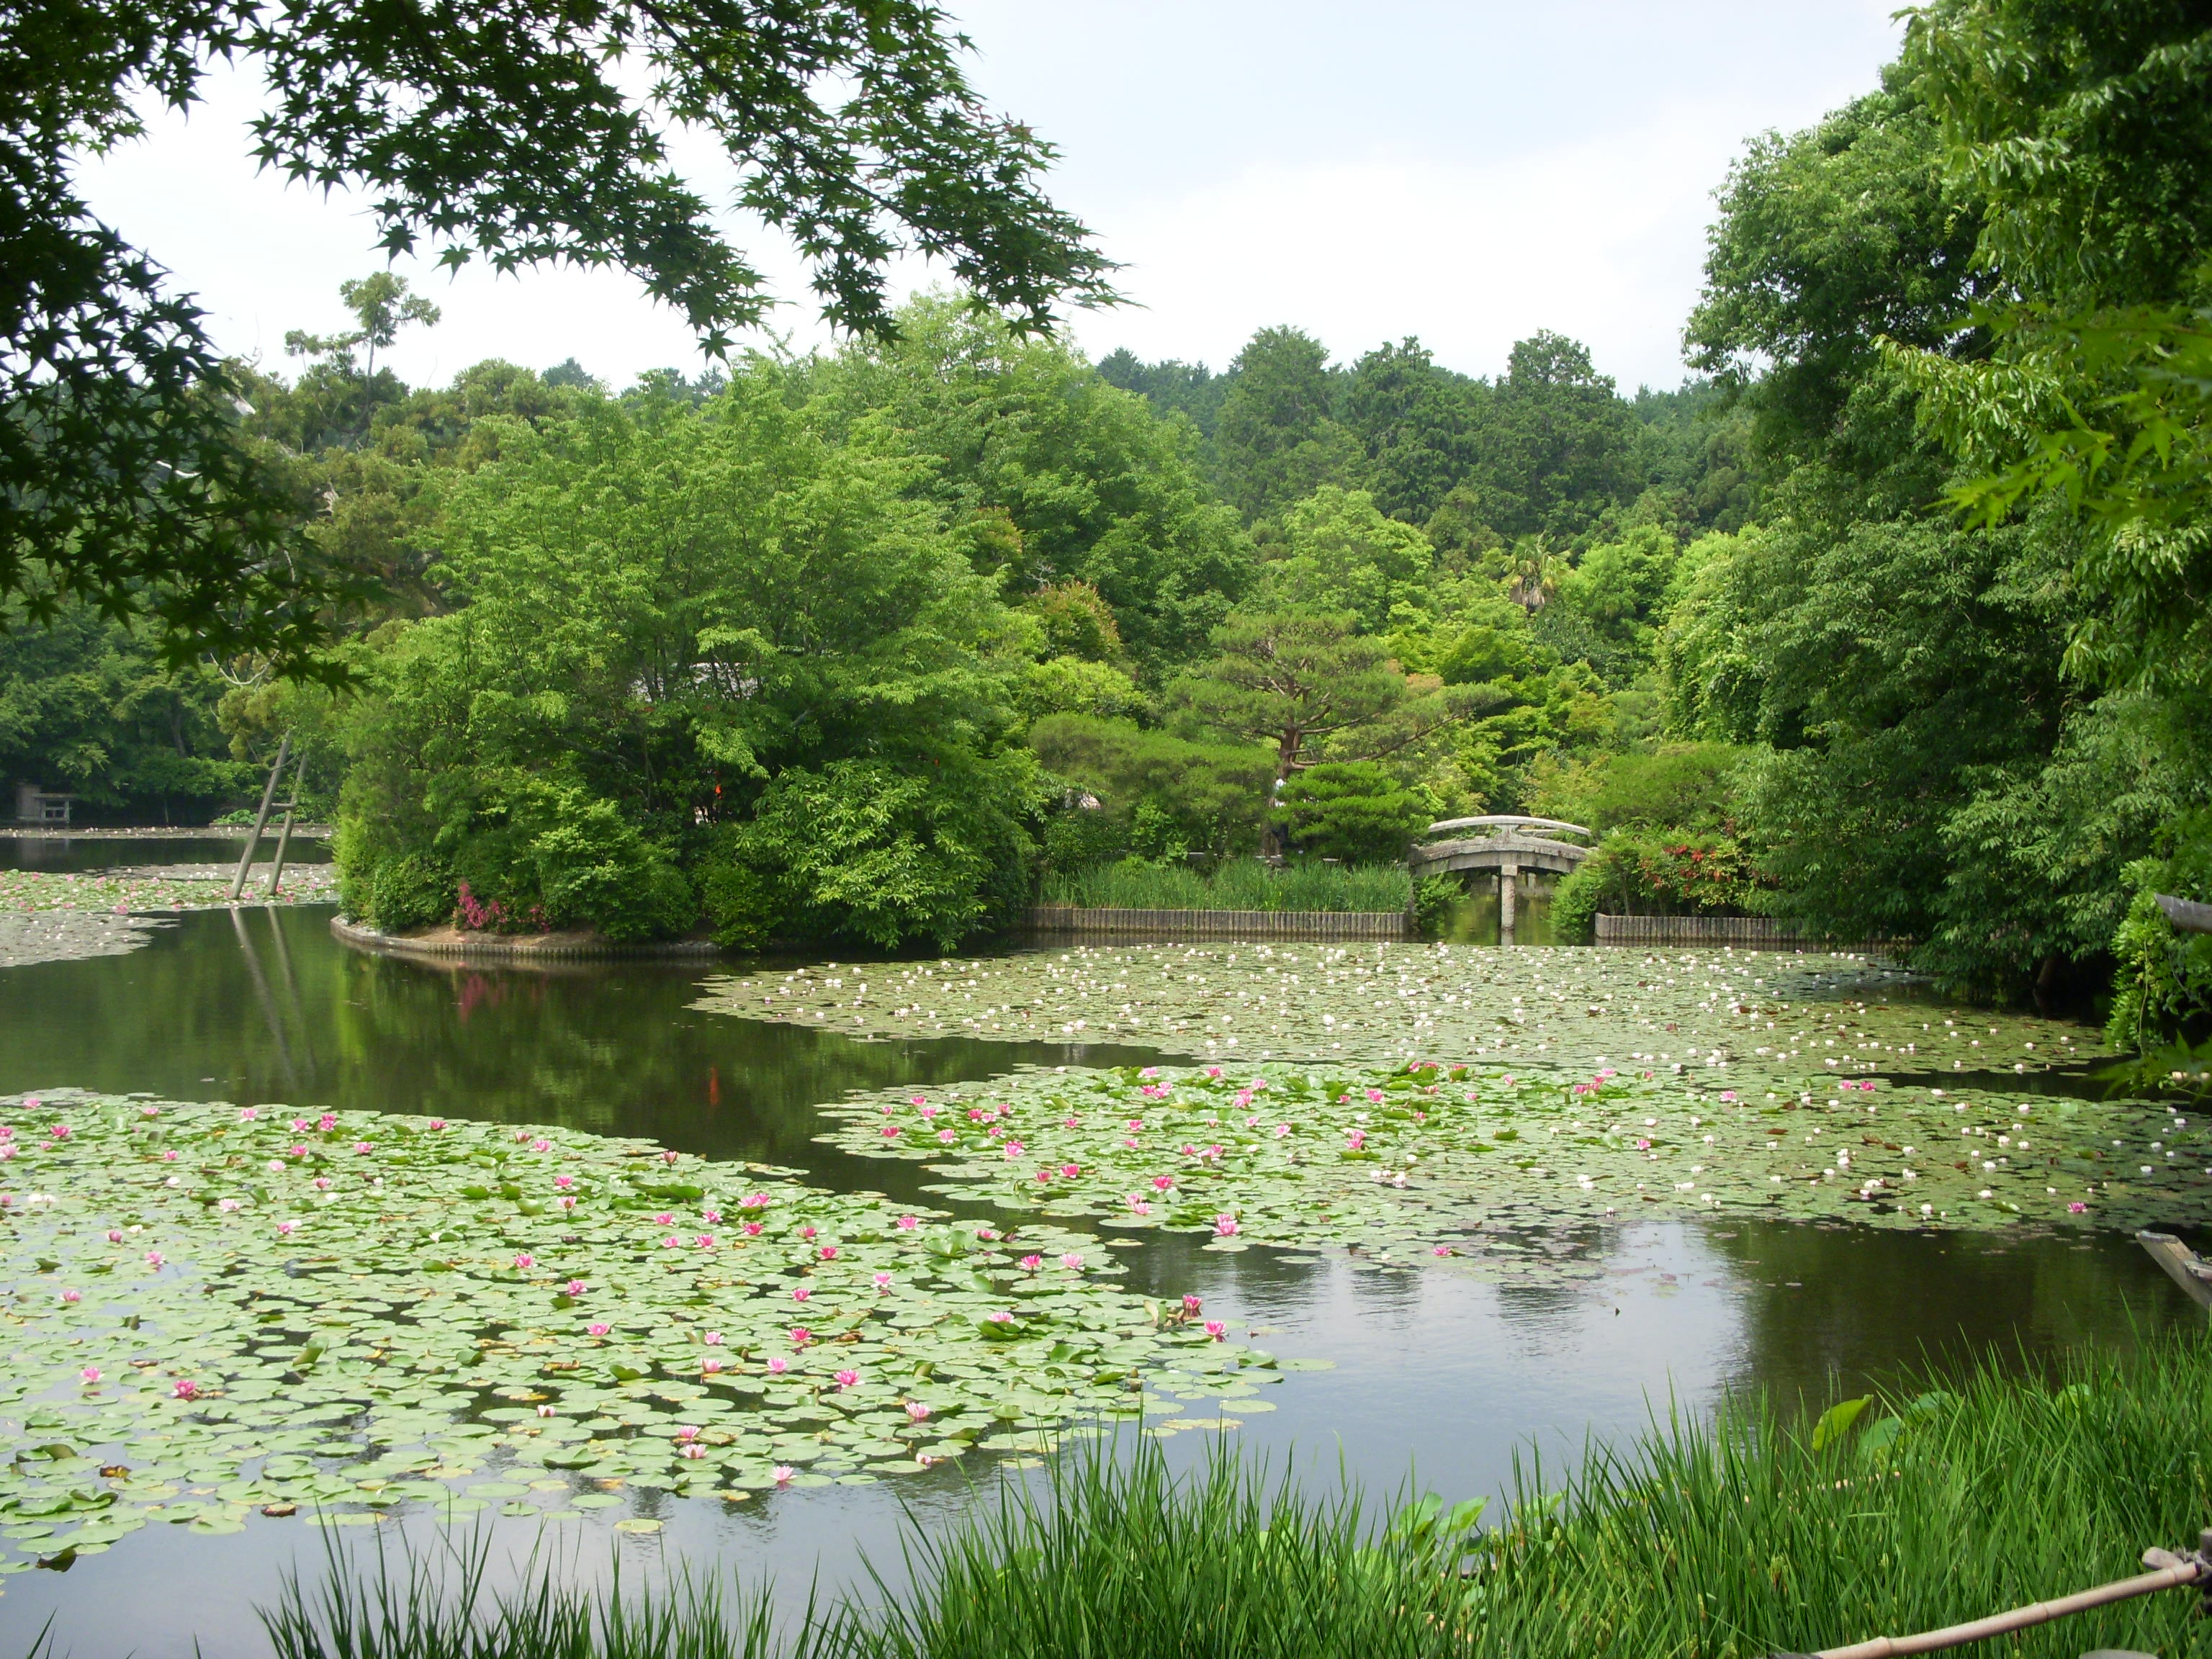 Kyoyochi 'Mirror' Pond